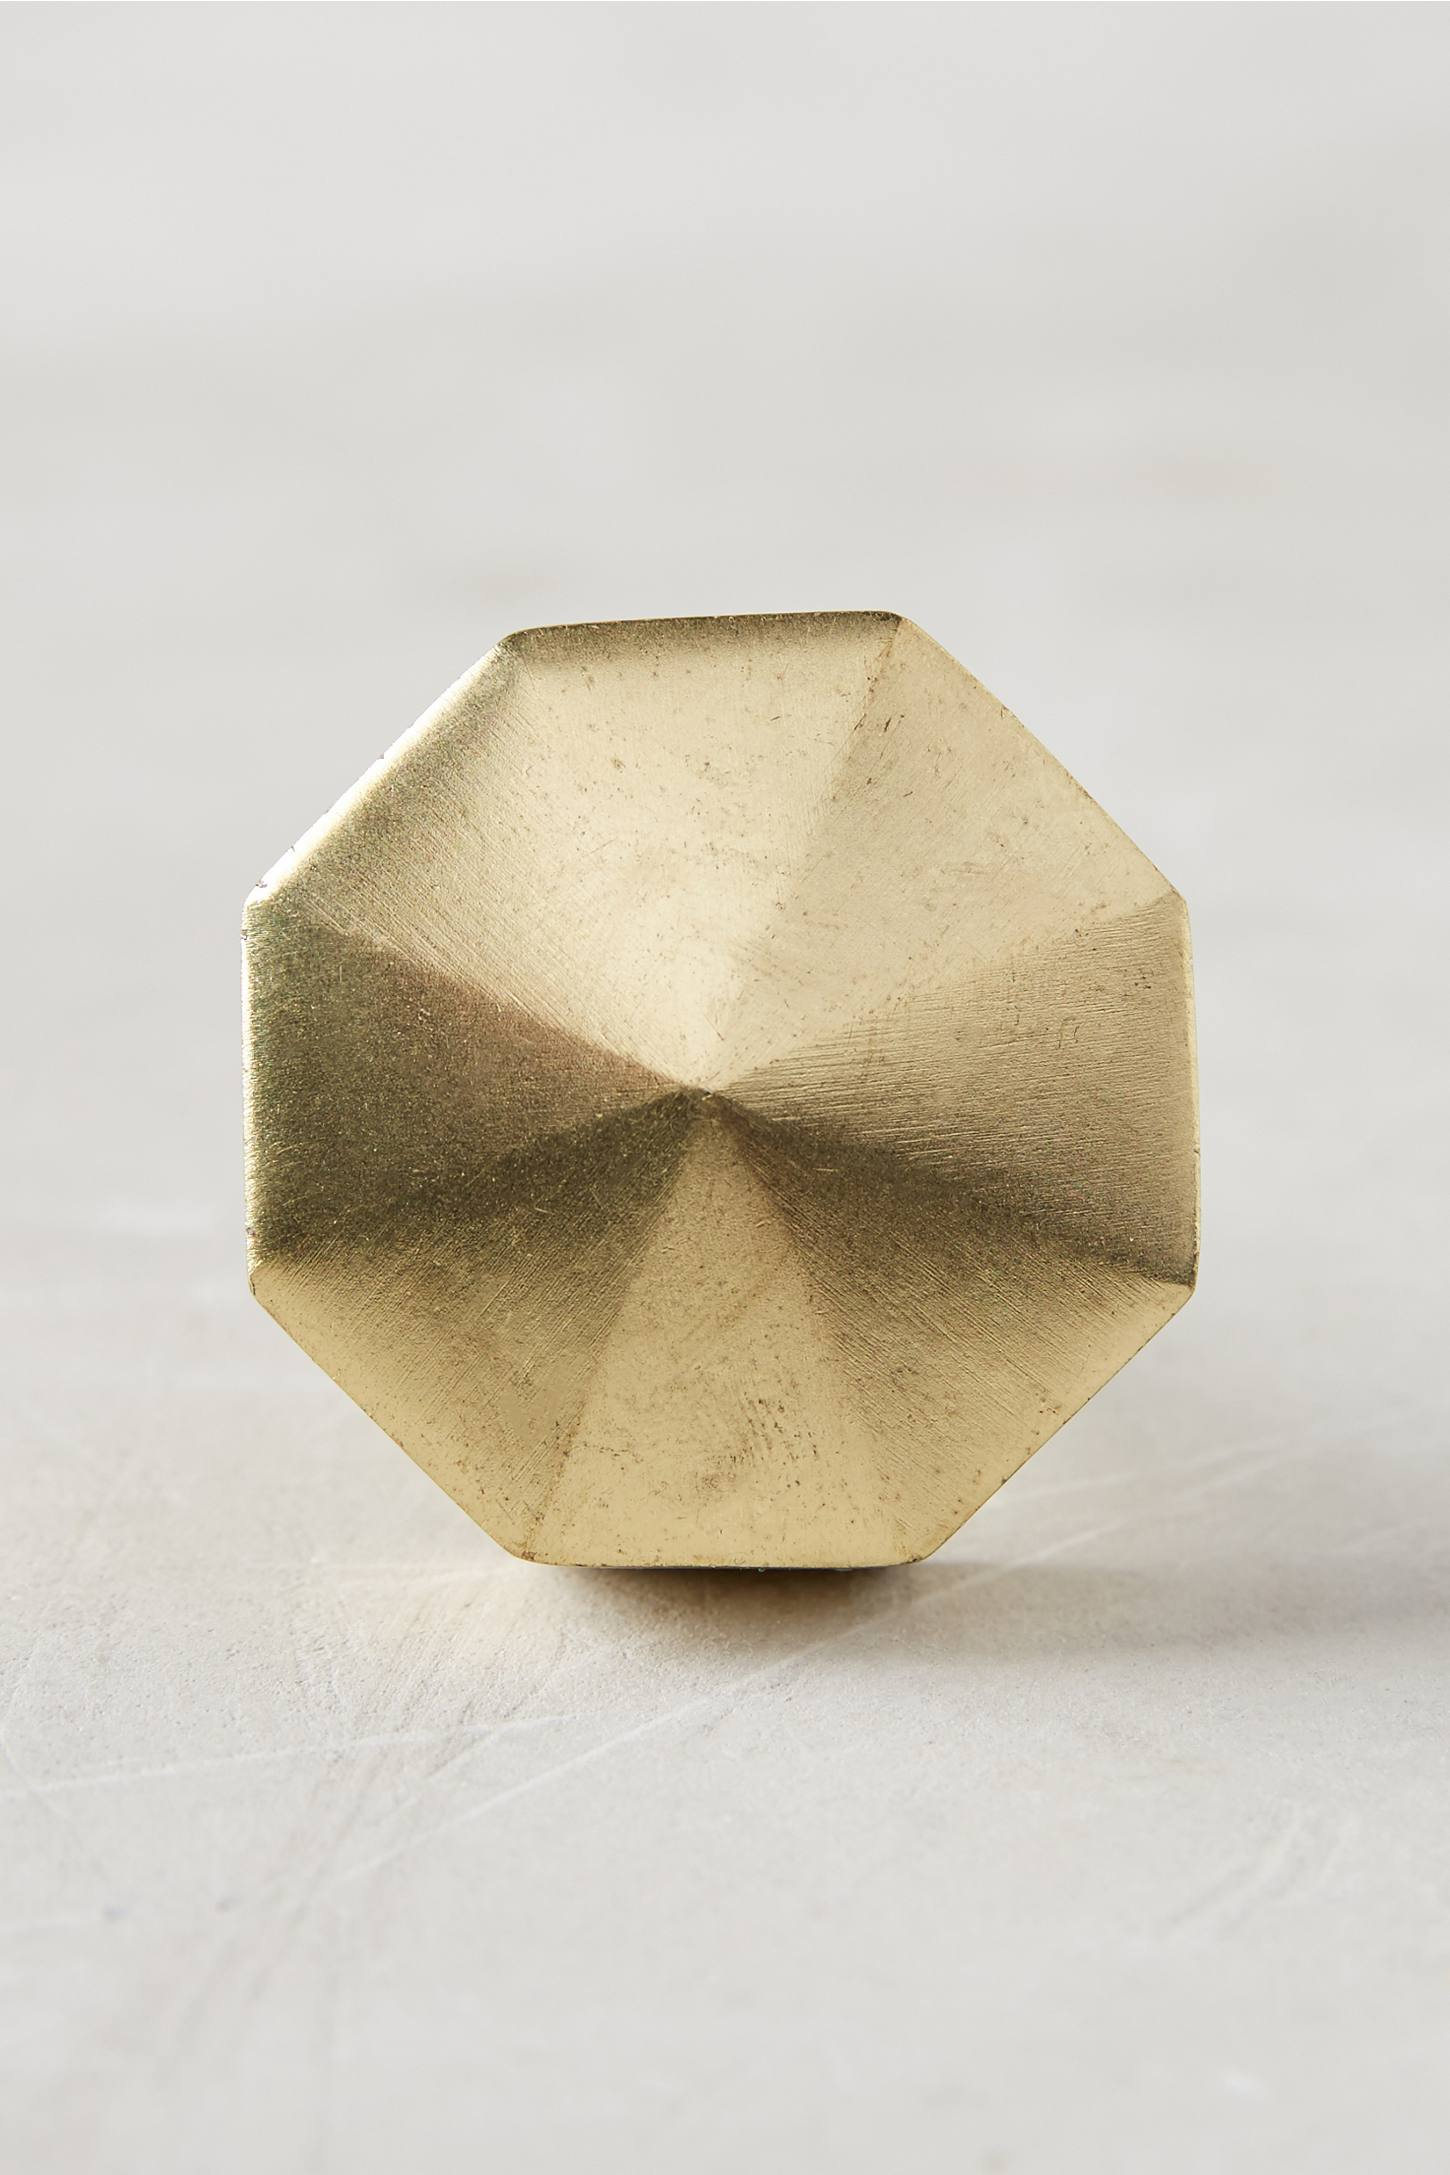 Slide View: 4: Faceted Ory Knob